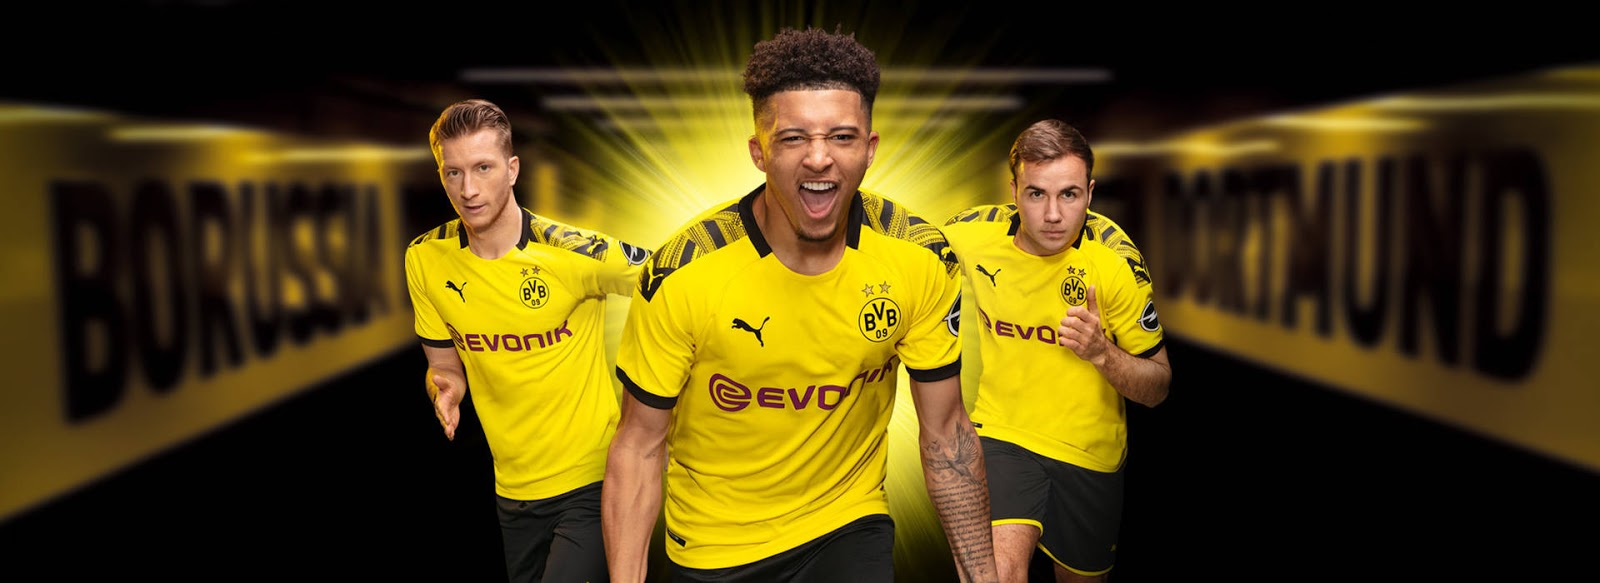 Dortmund home kit 19/20